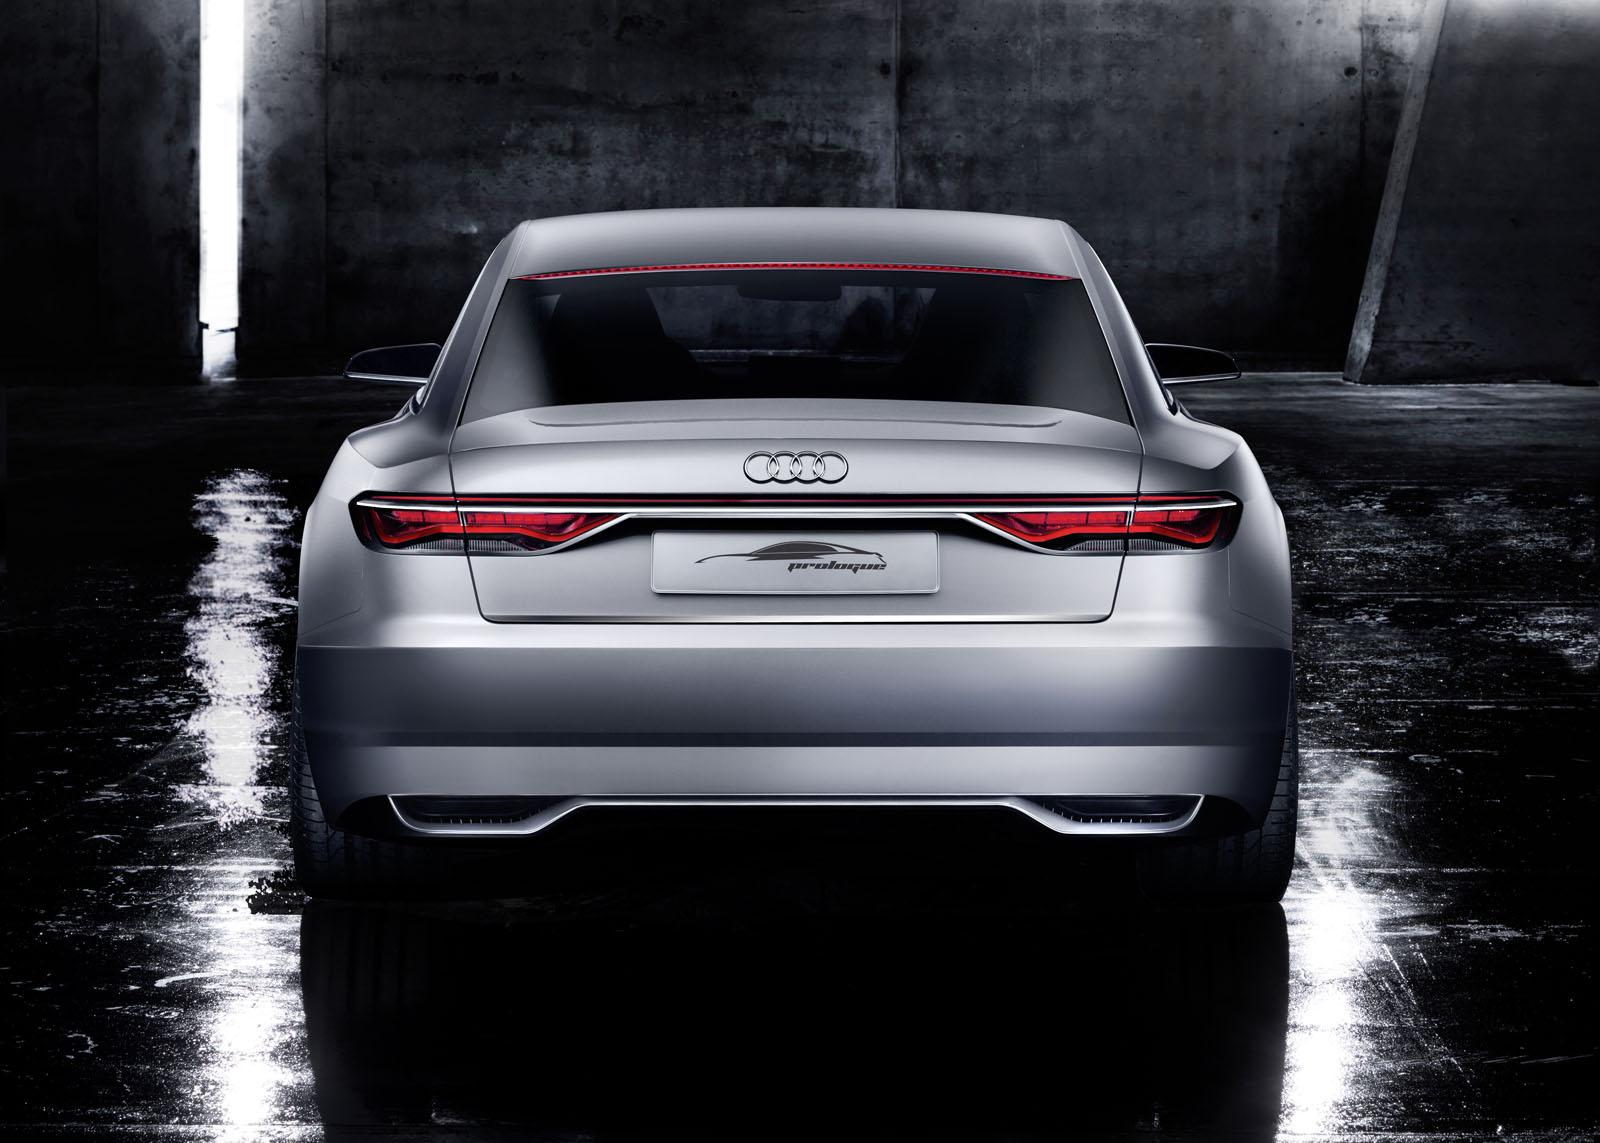 Audi Prologue Concept rear